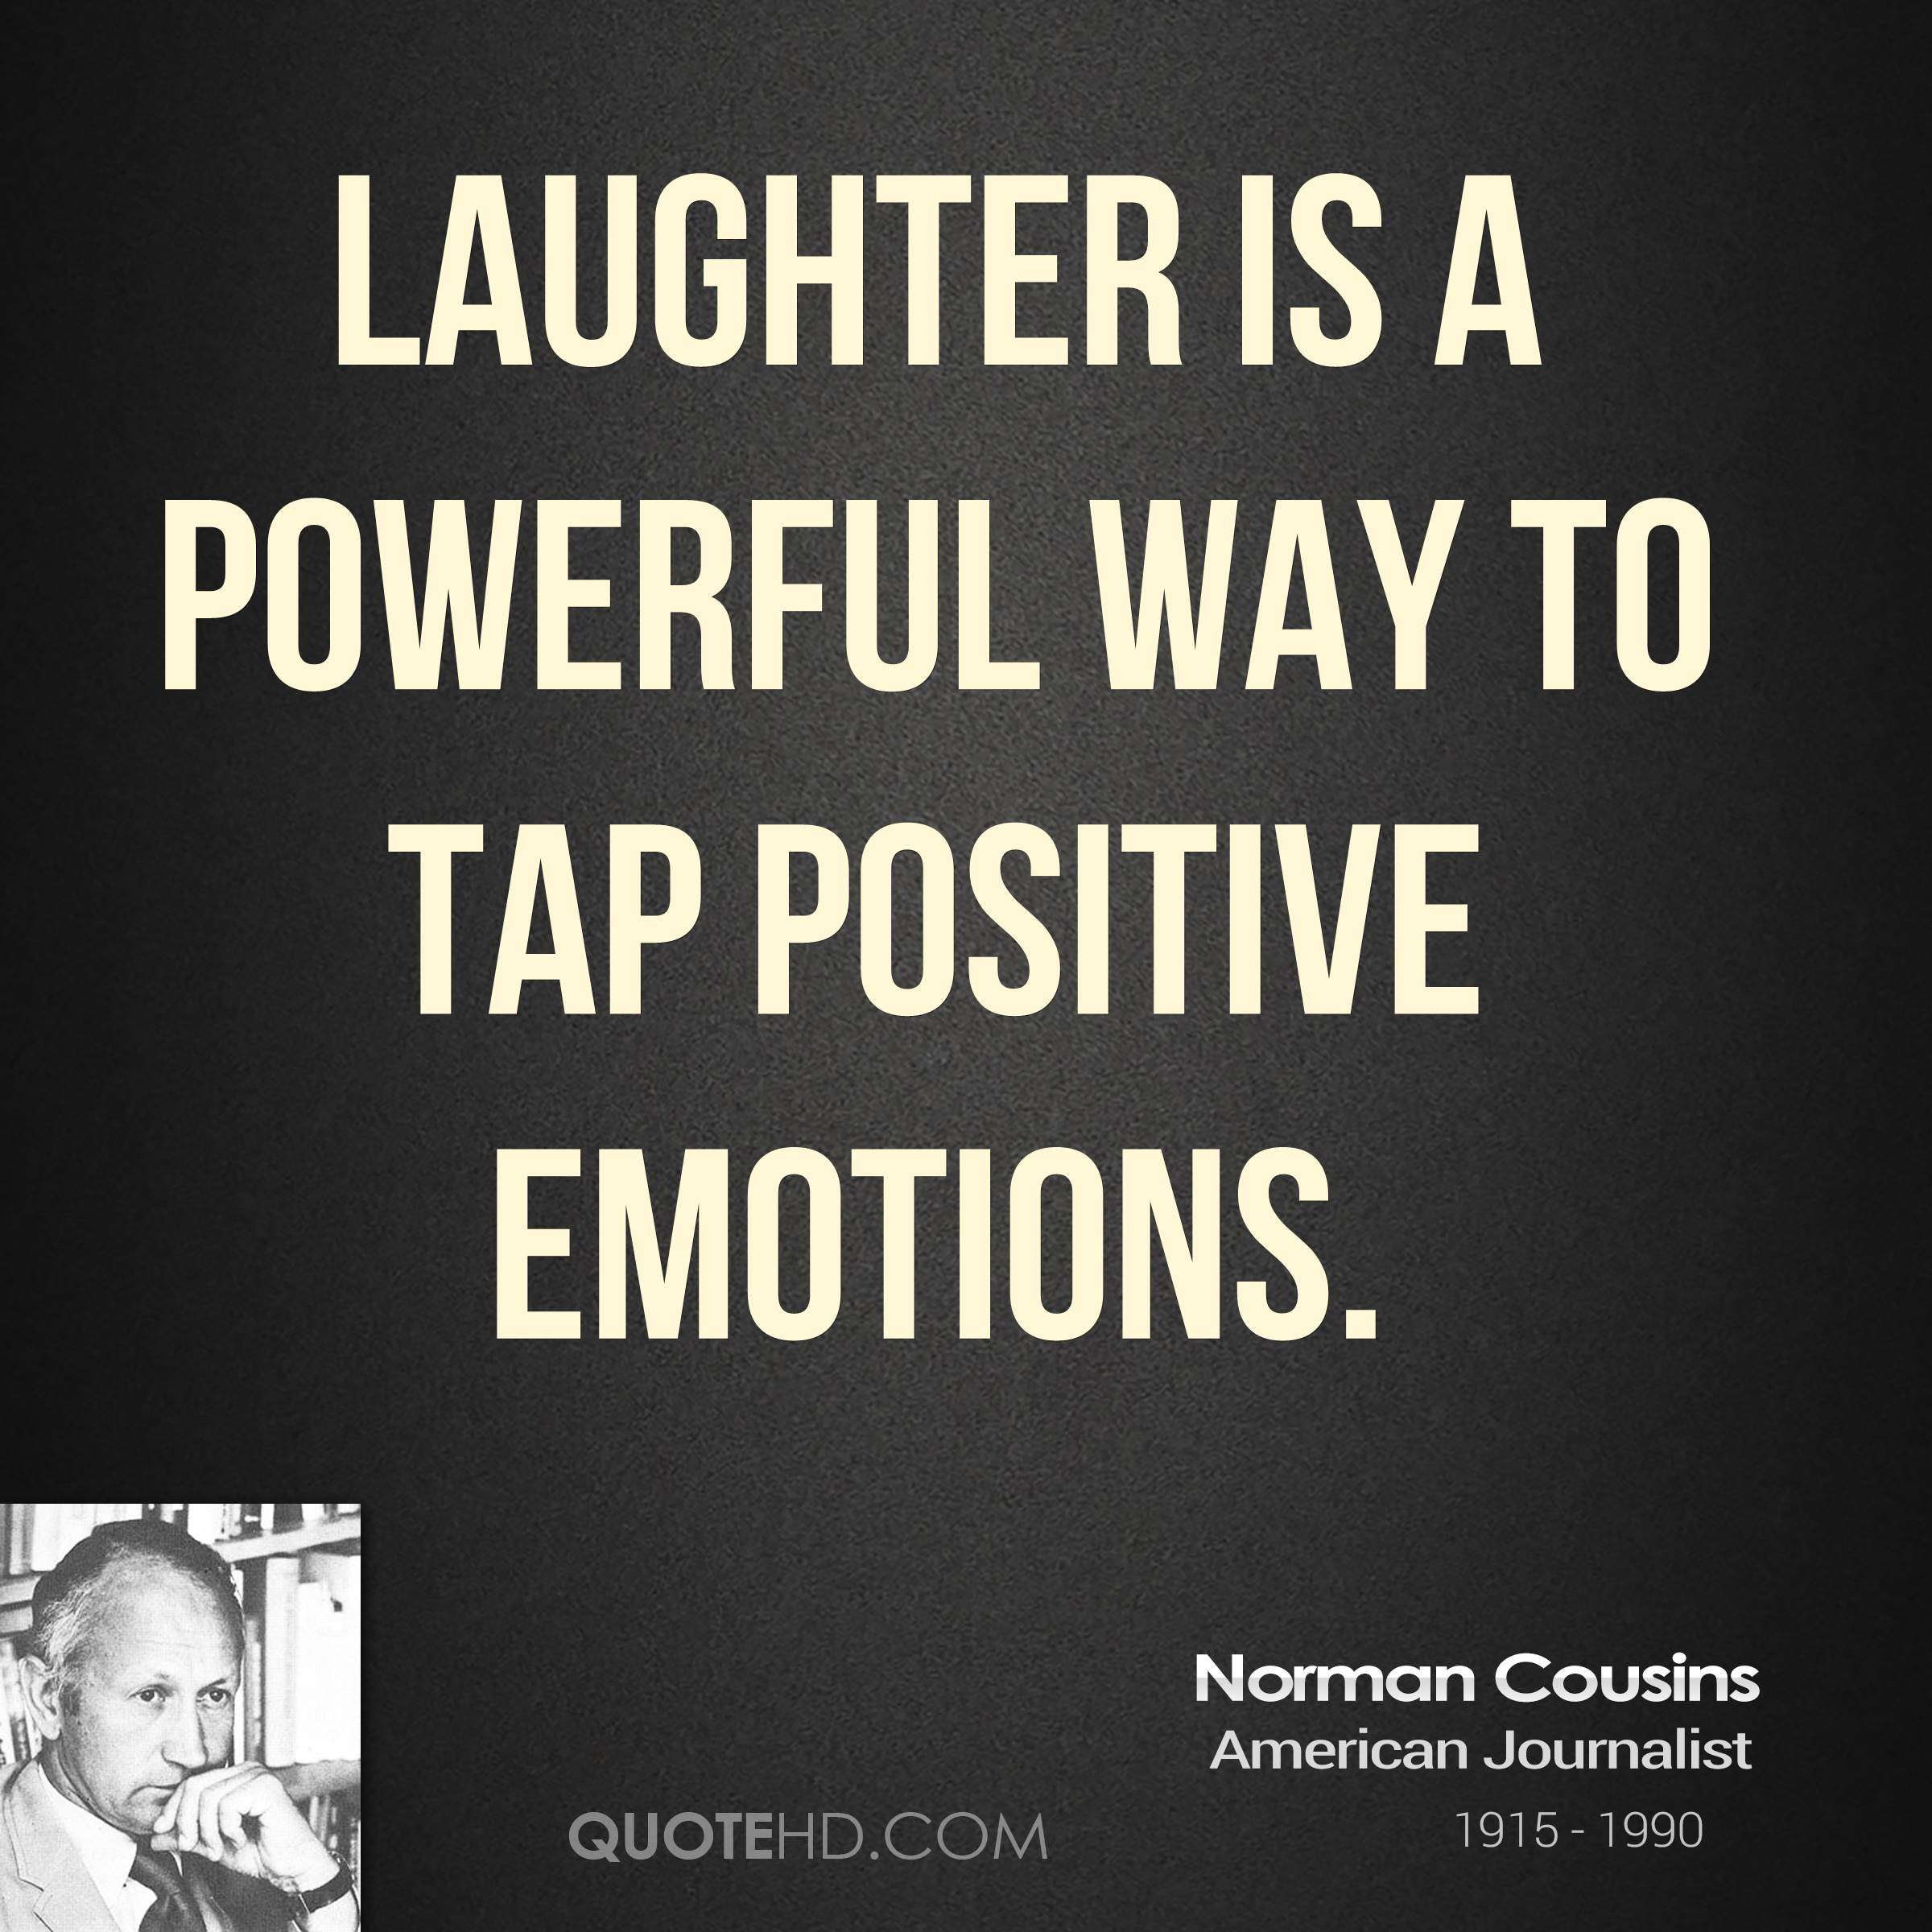 Laughter is a powerful way to tap positive emotions.